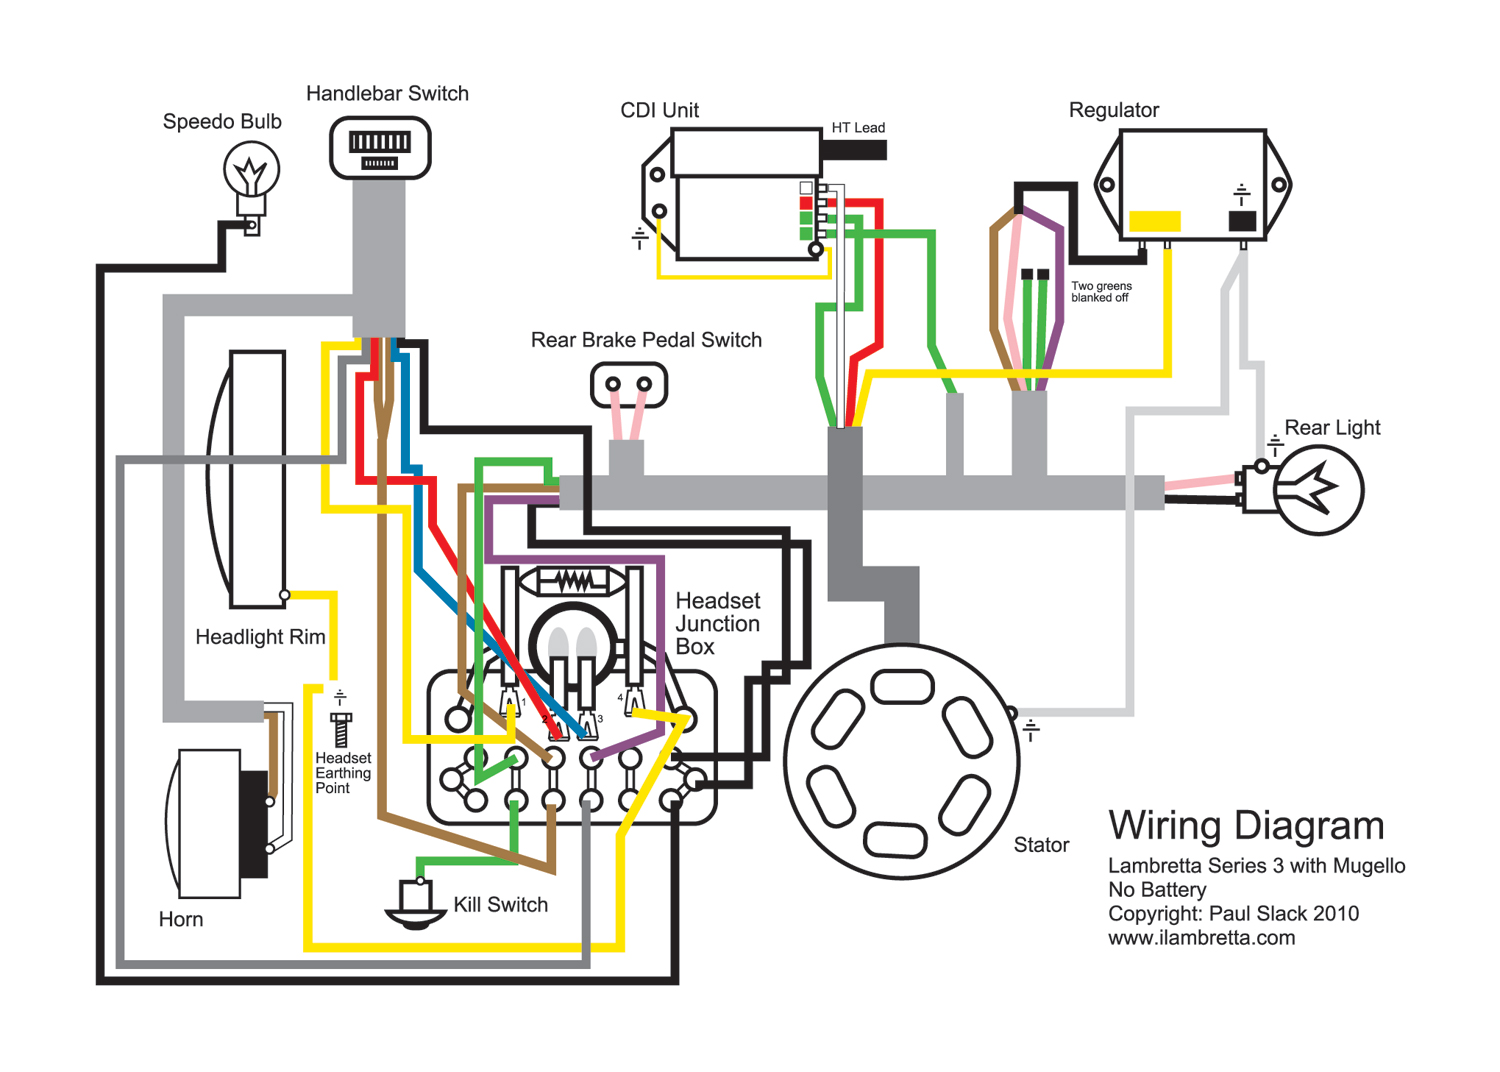 Kymco People 150 Wiring Diagram Diagrams Agility 125 For A Honda Ruckus Jonway Scooter